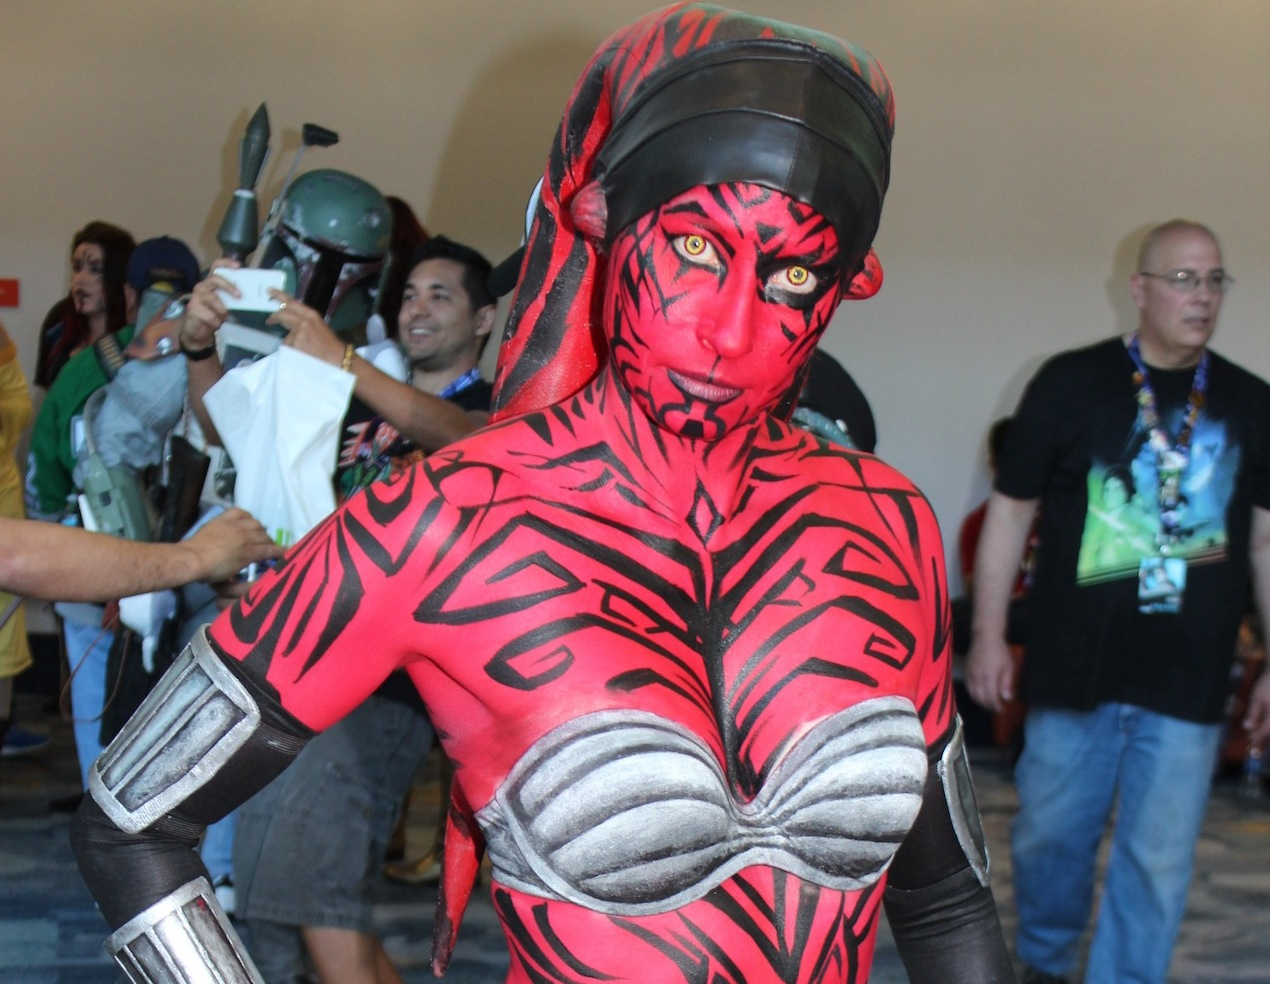 The Saga Continues with Another 75 Star Wars Cosplay ...